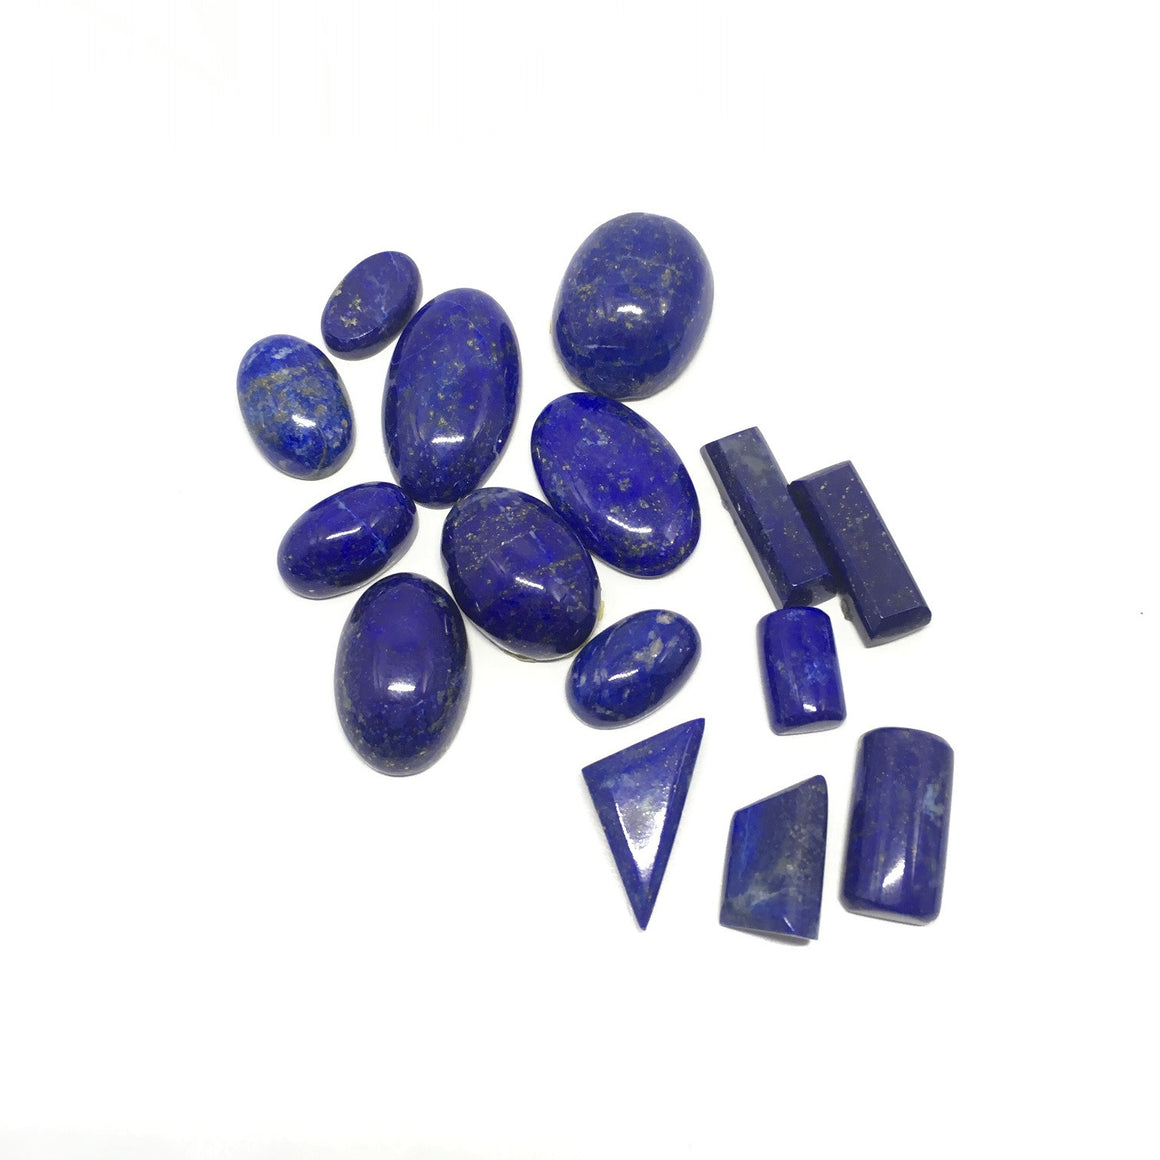 Lapis Lazuli Cabochon - Lapis Cabochon For Ring Multiple Cut - 148.75 ct